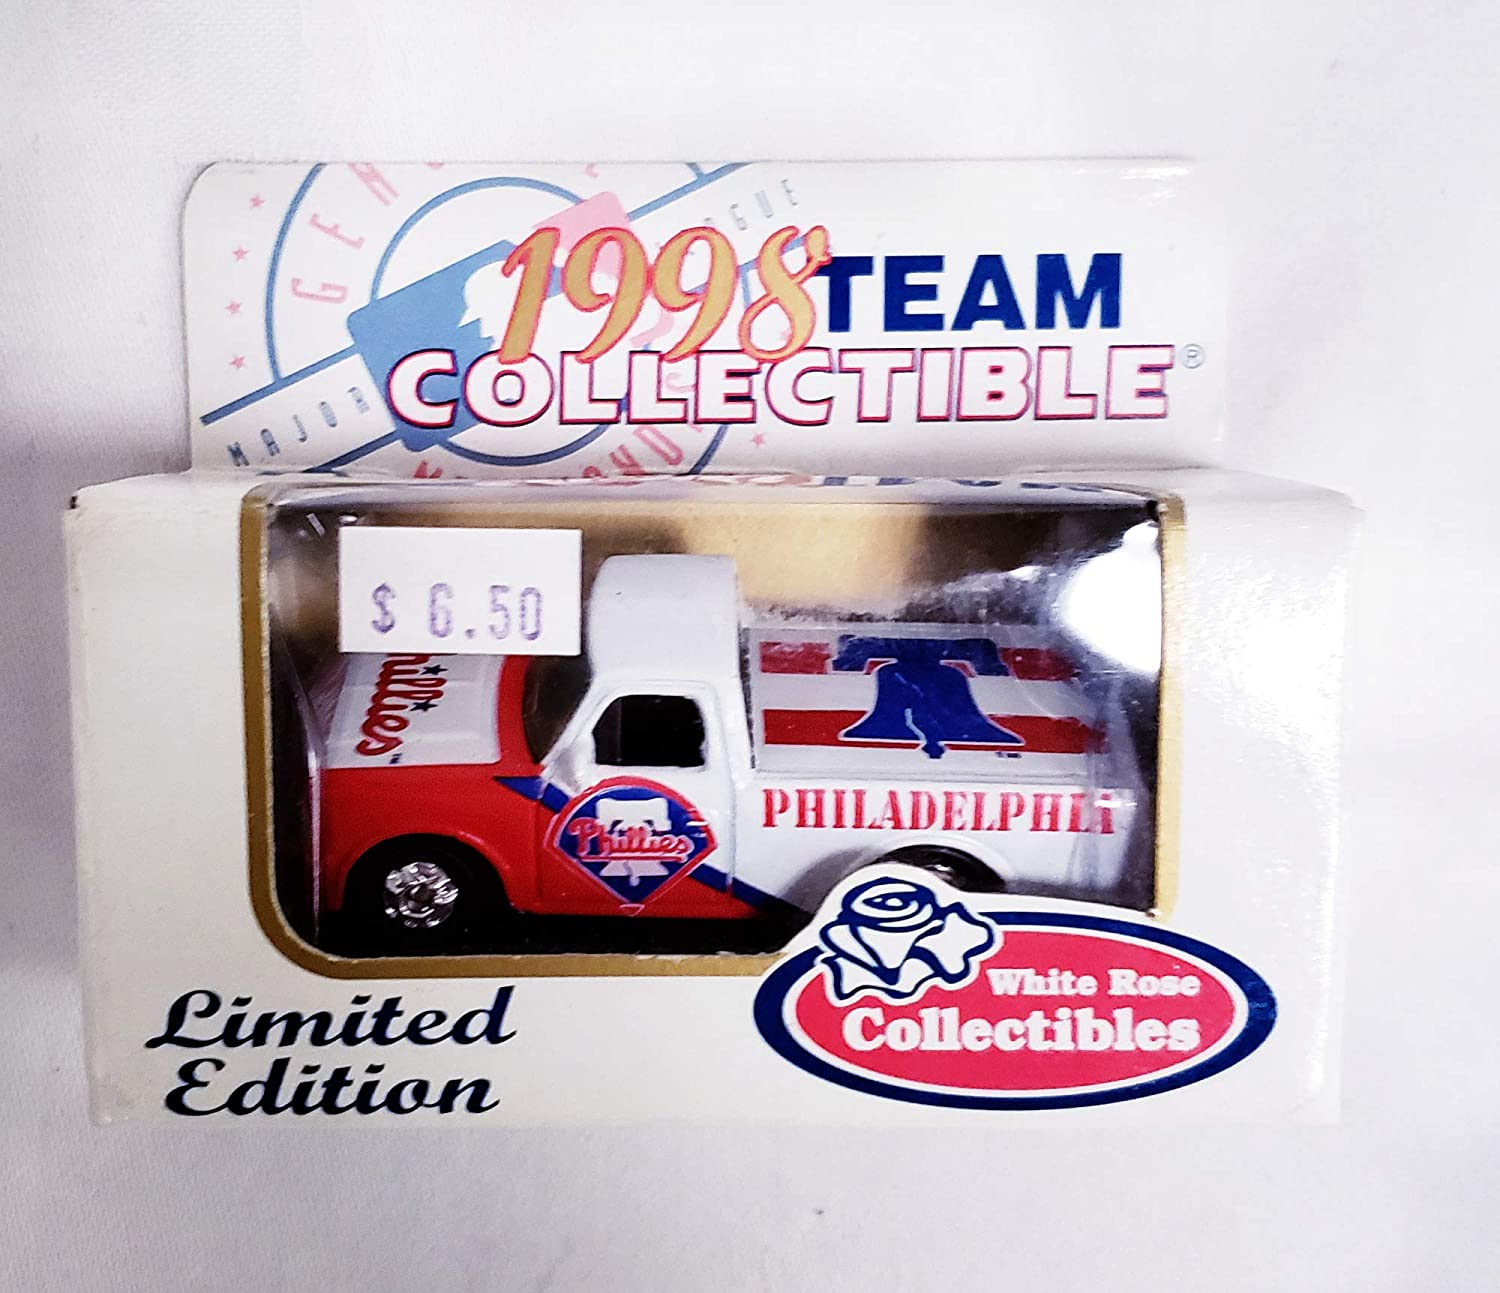 Philadelphia Phillies 1998 Limited Edition Ford F-150 Pick Up Truck Die Cast Collectible